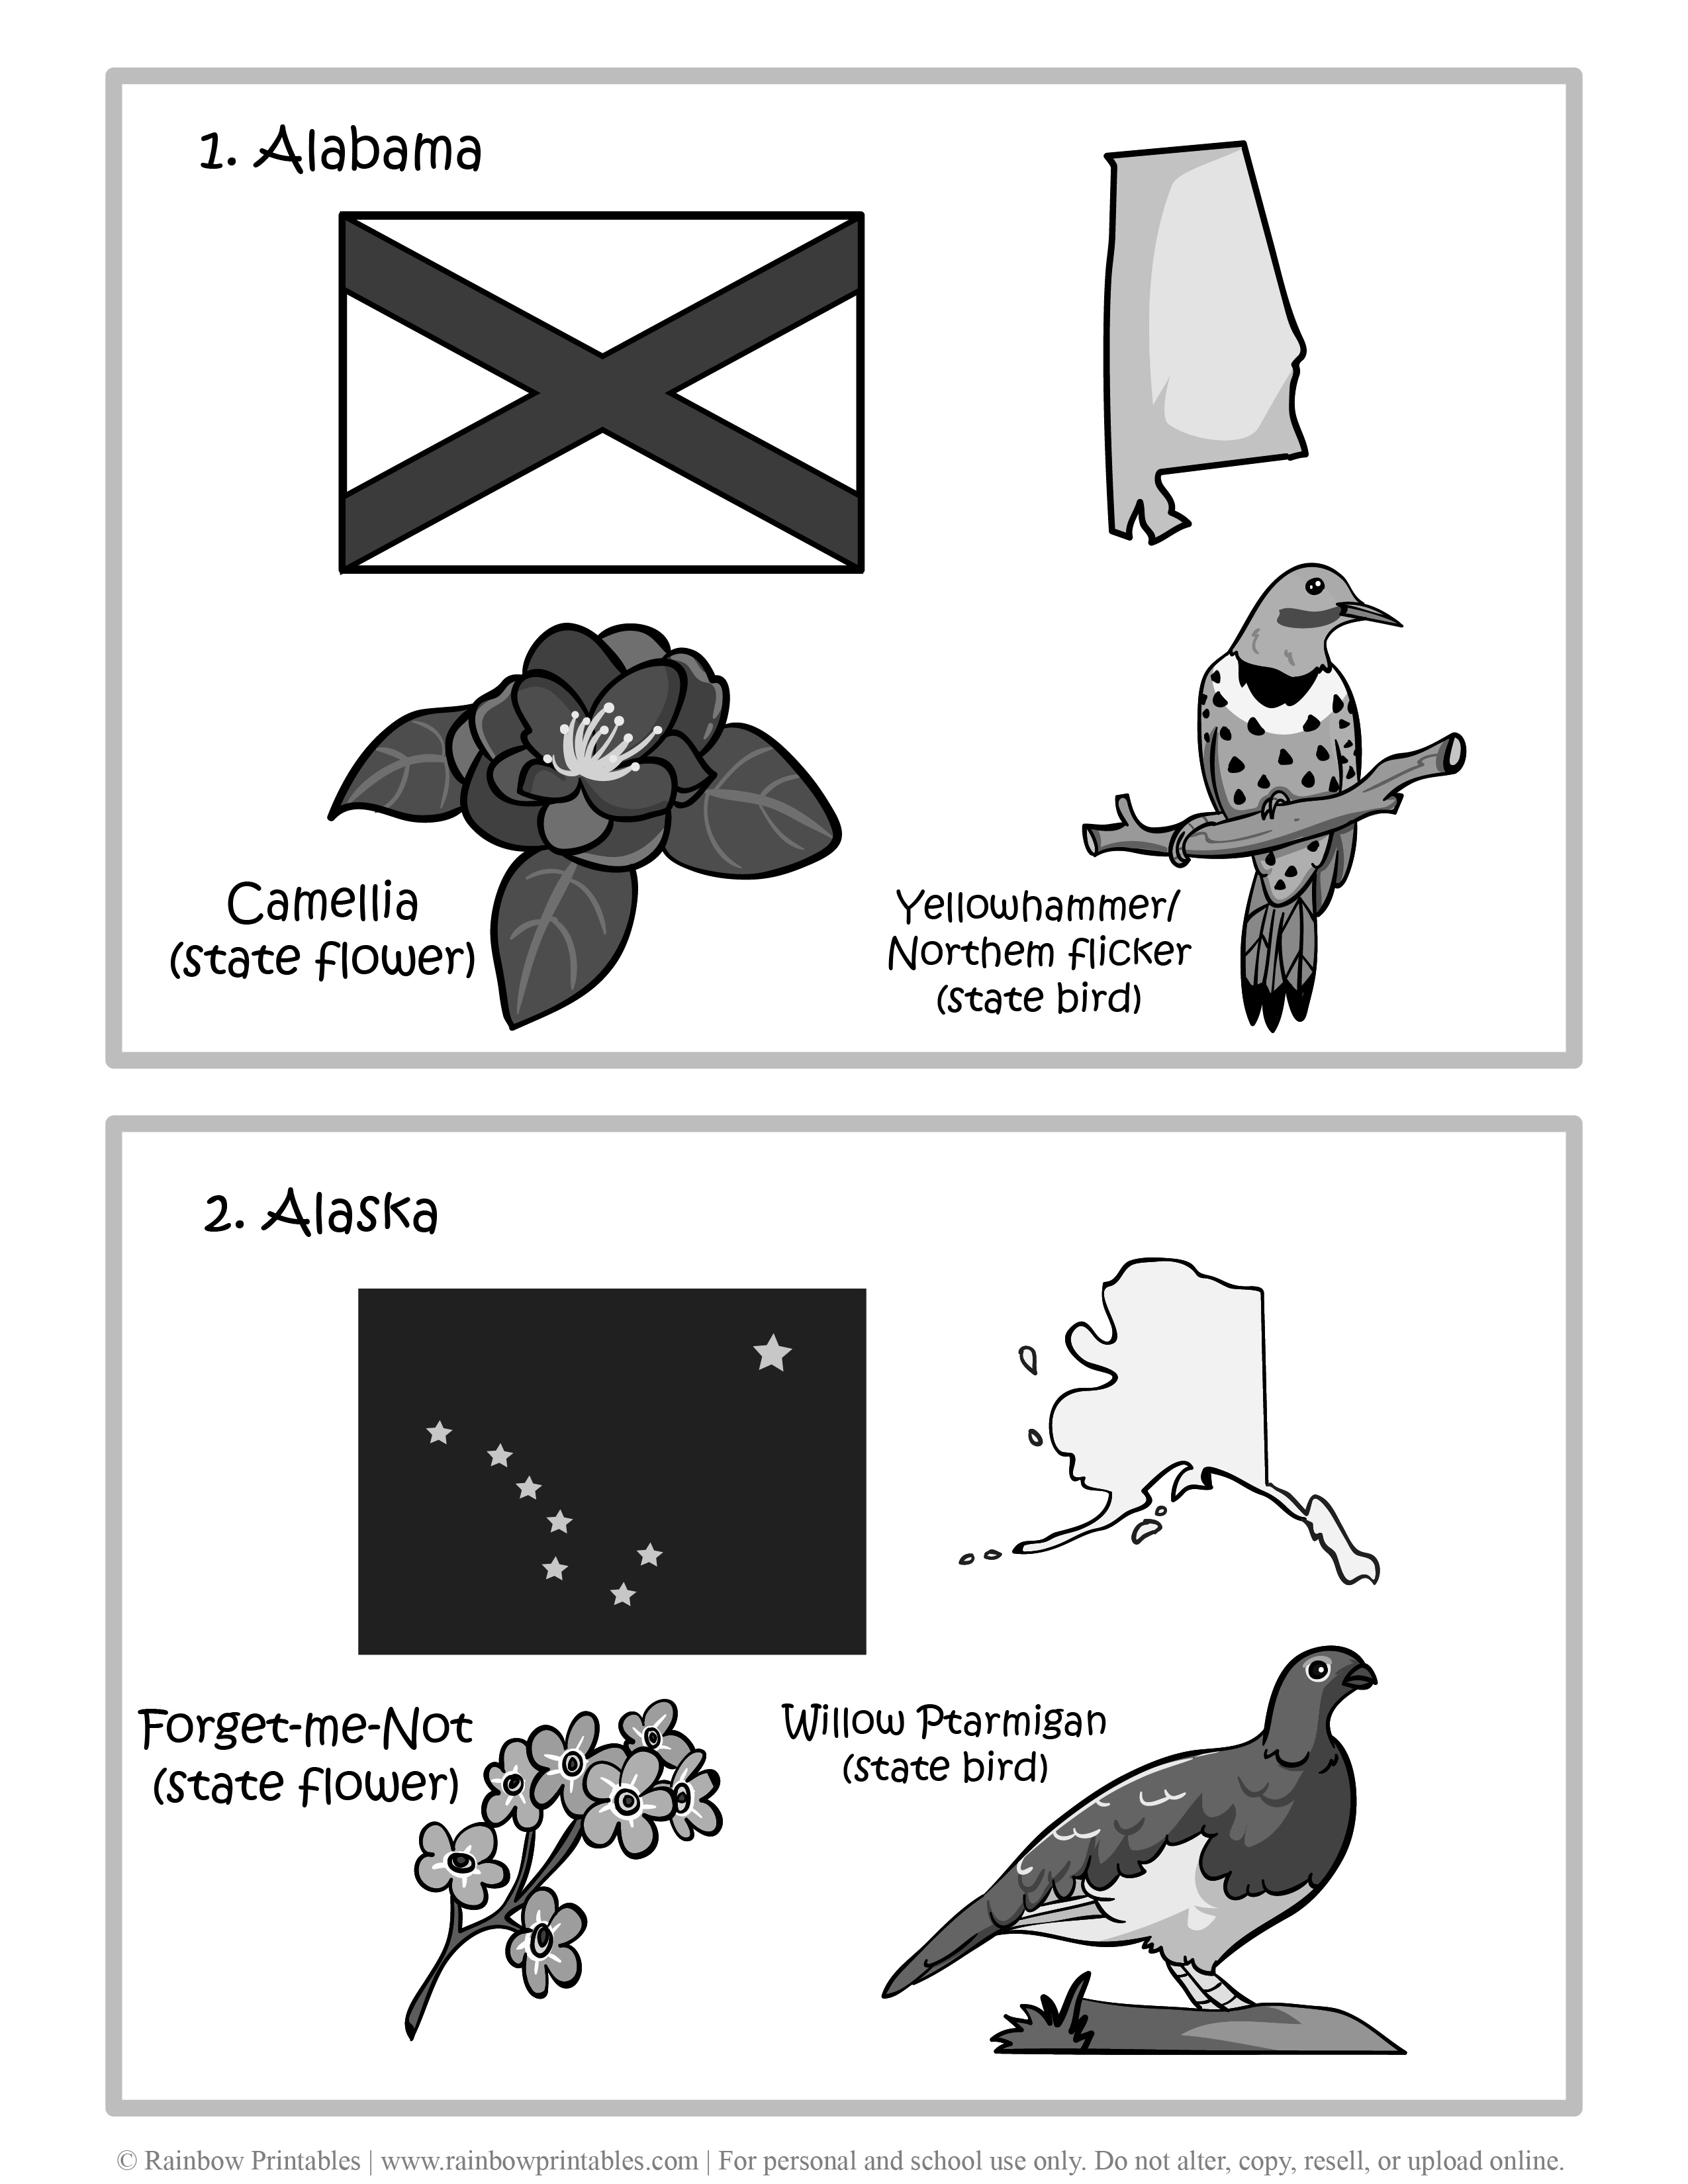 Alabama, Alaska, 50 US State Flag, State Bird, State Flower, United States of America - American States Geography Worksheet Class Lesson Printables Flashcards Black White